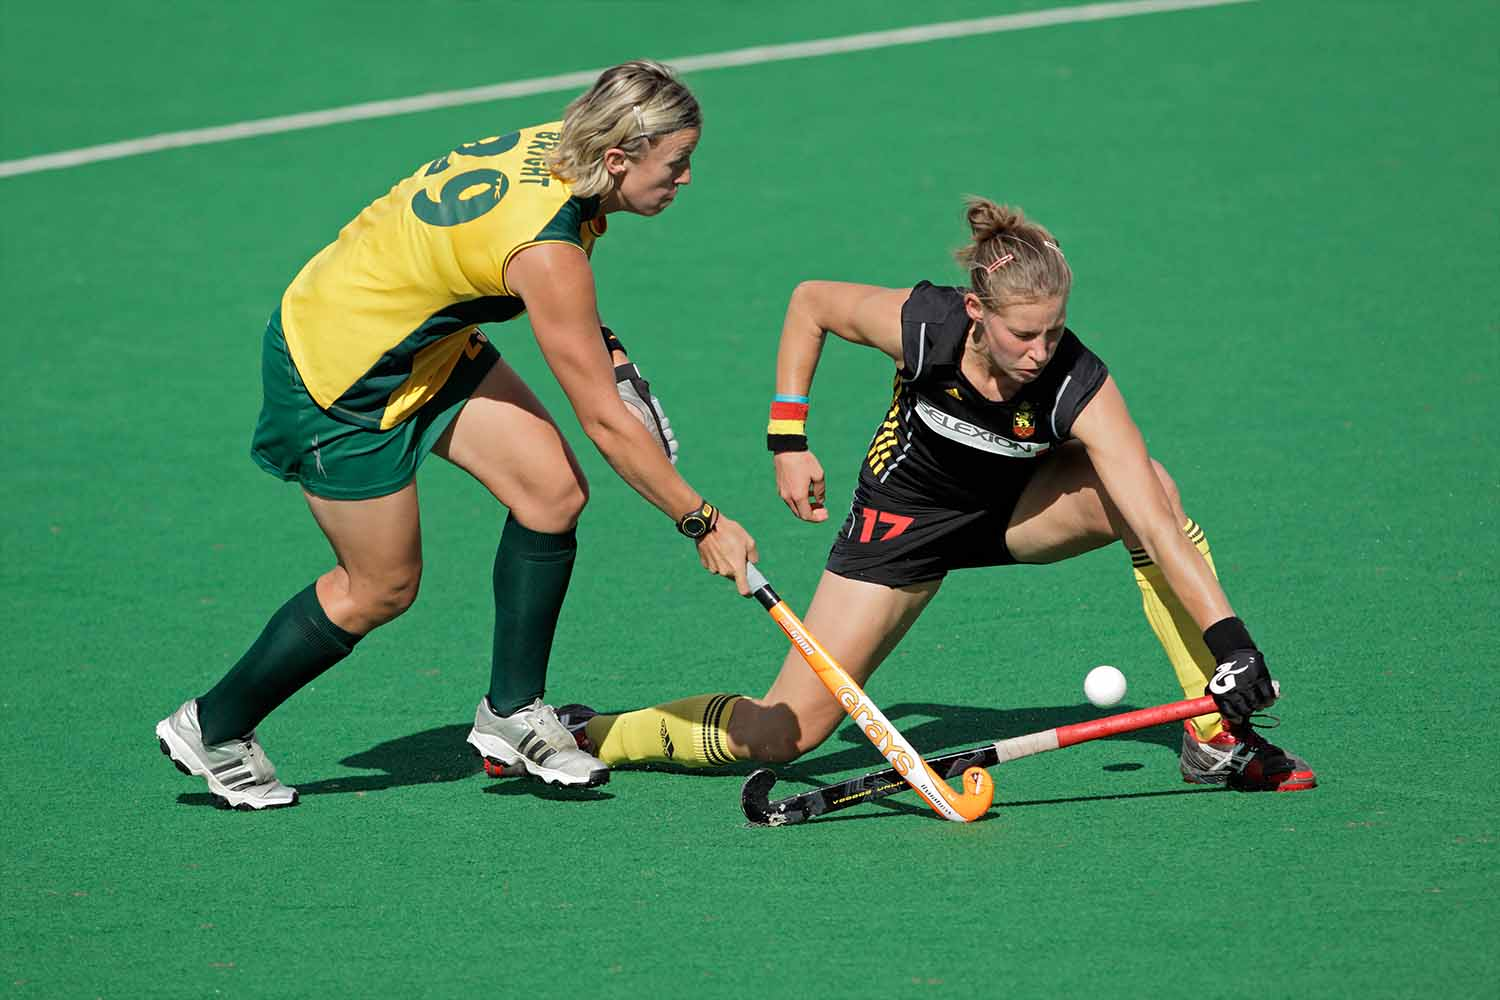 Tarryn Bright and Anne-Sophie van Regemortel in action during a women's field hockey match between South Africa and Belgium, Bloemfontein, 7 February 2011